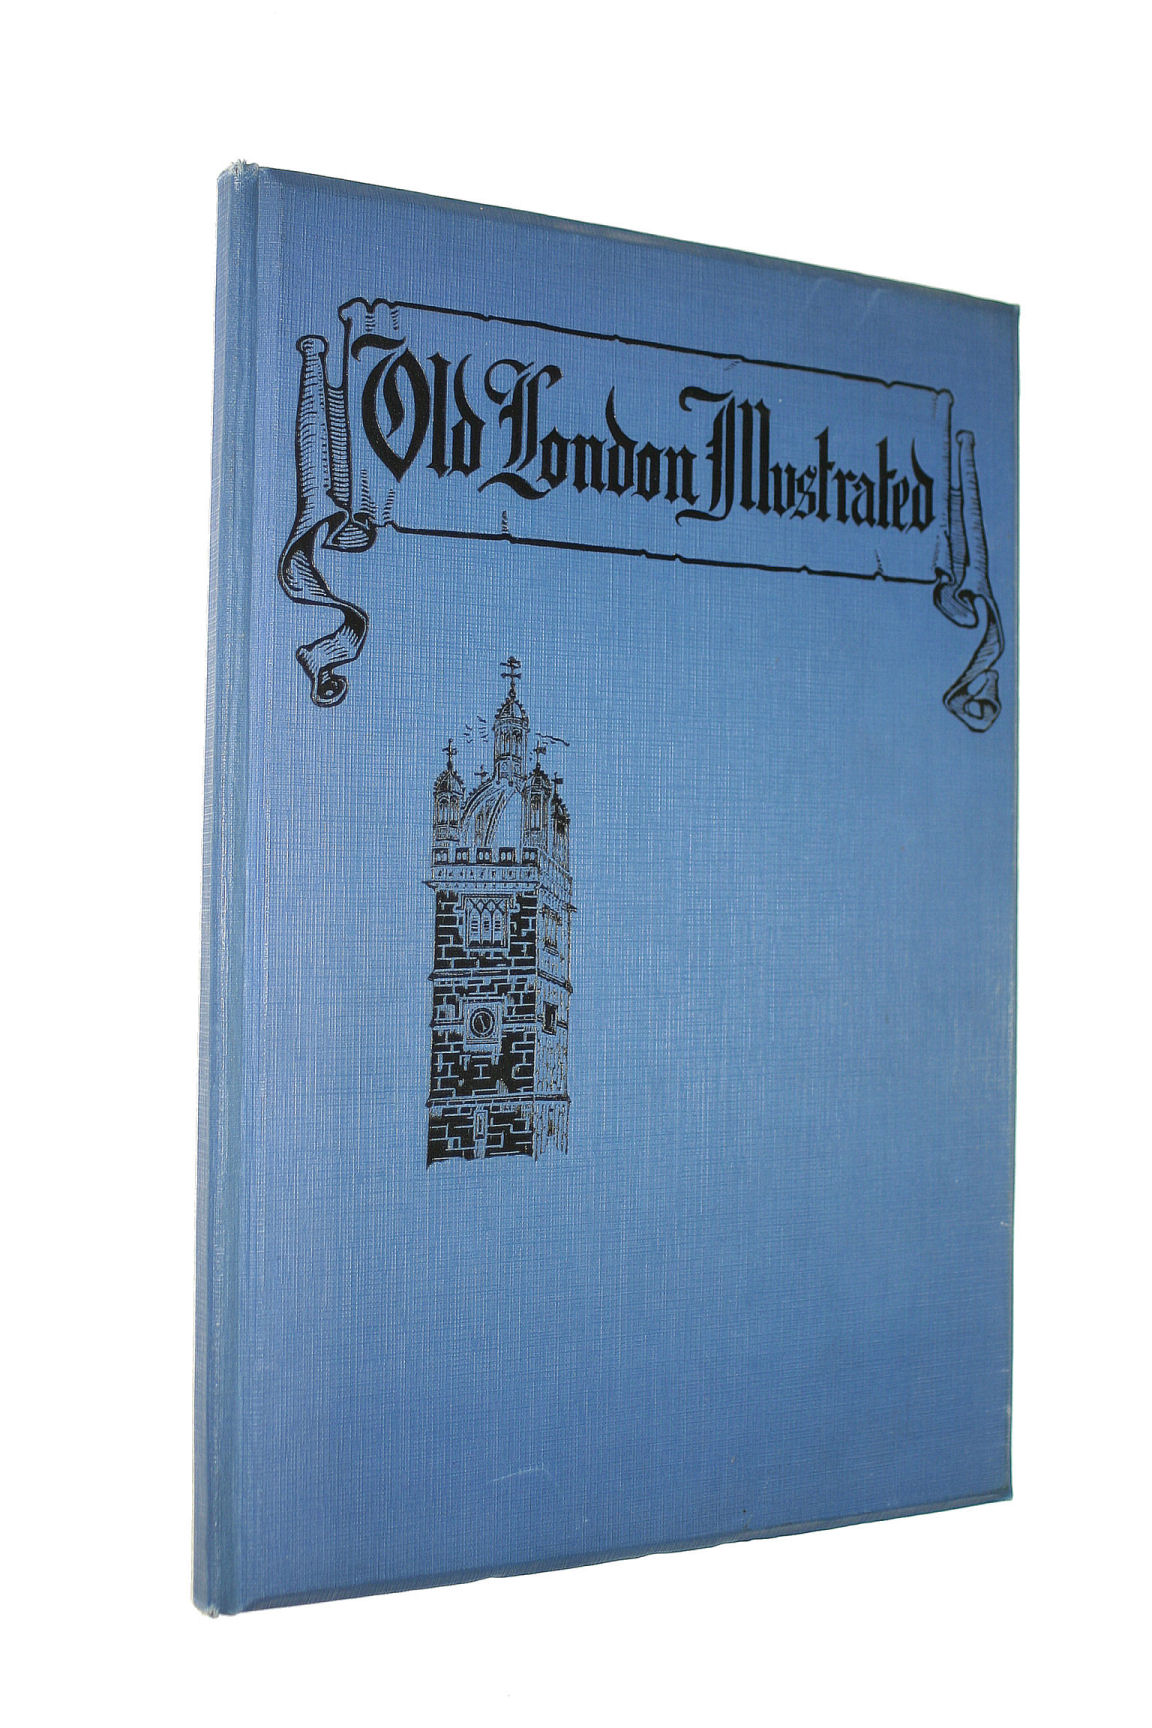 Image for Old London Illustrated - a series of drawings illustrating London in the XVI th century